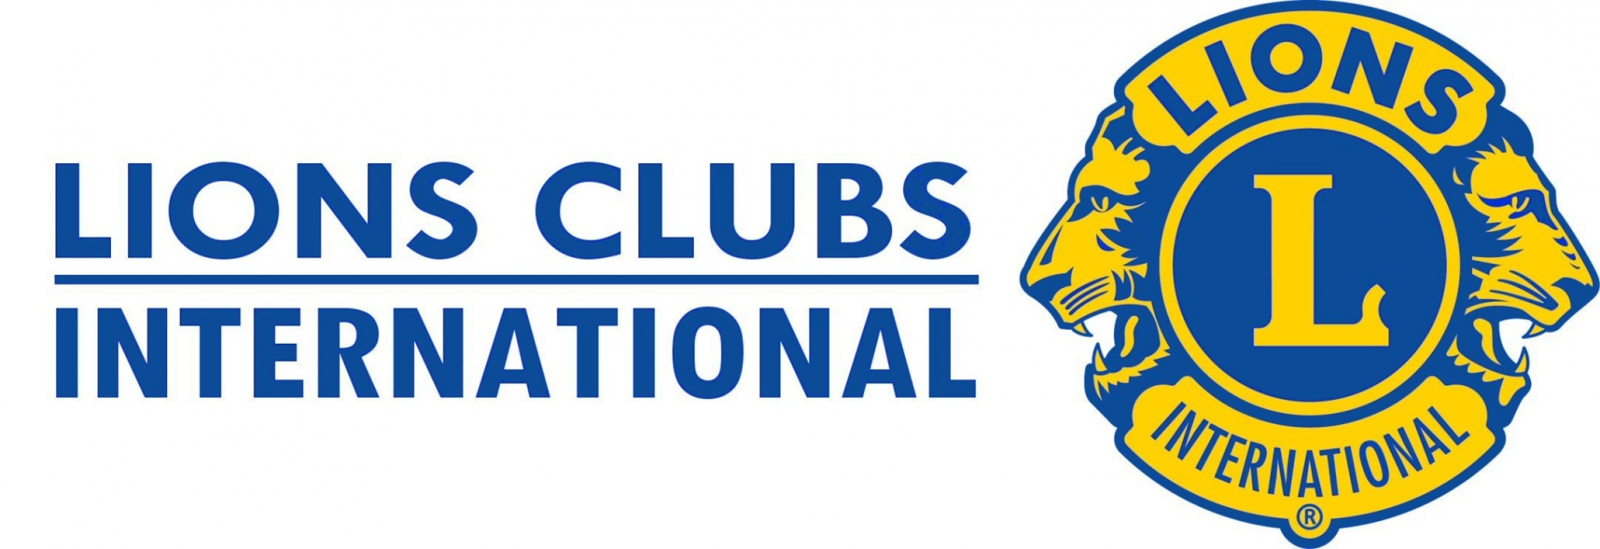 The Lions Club Foundation